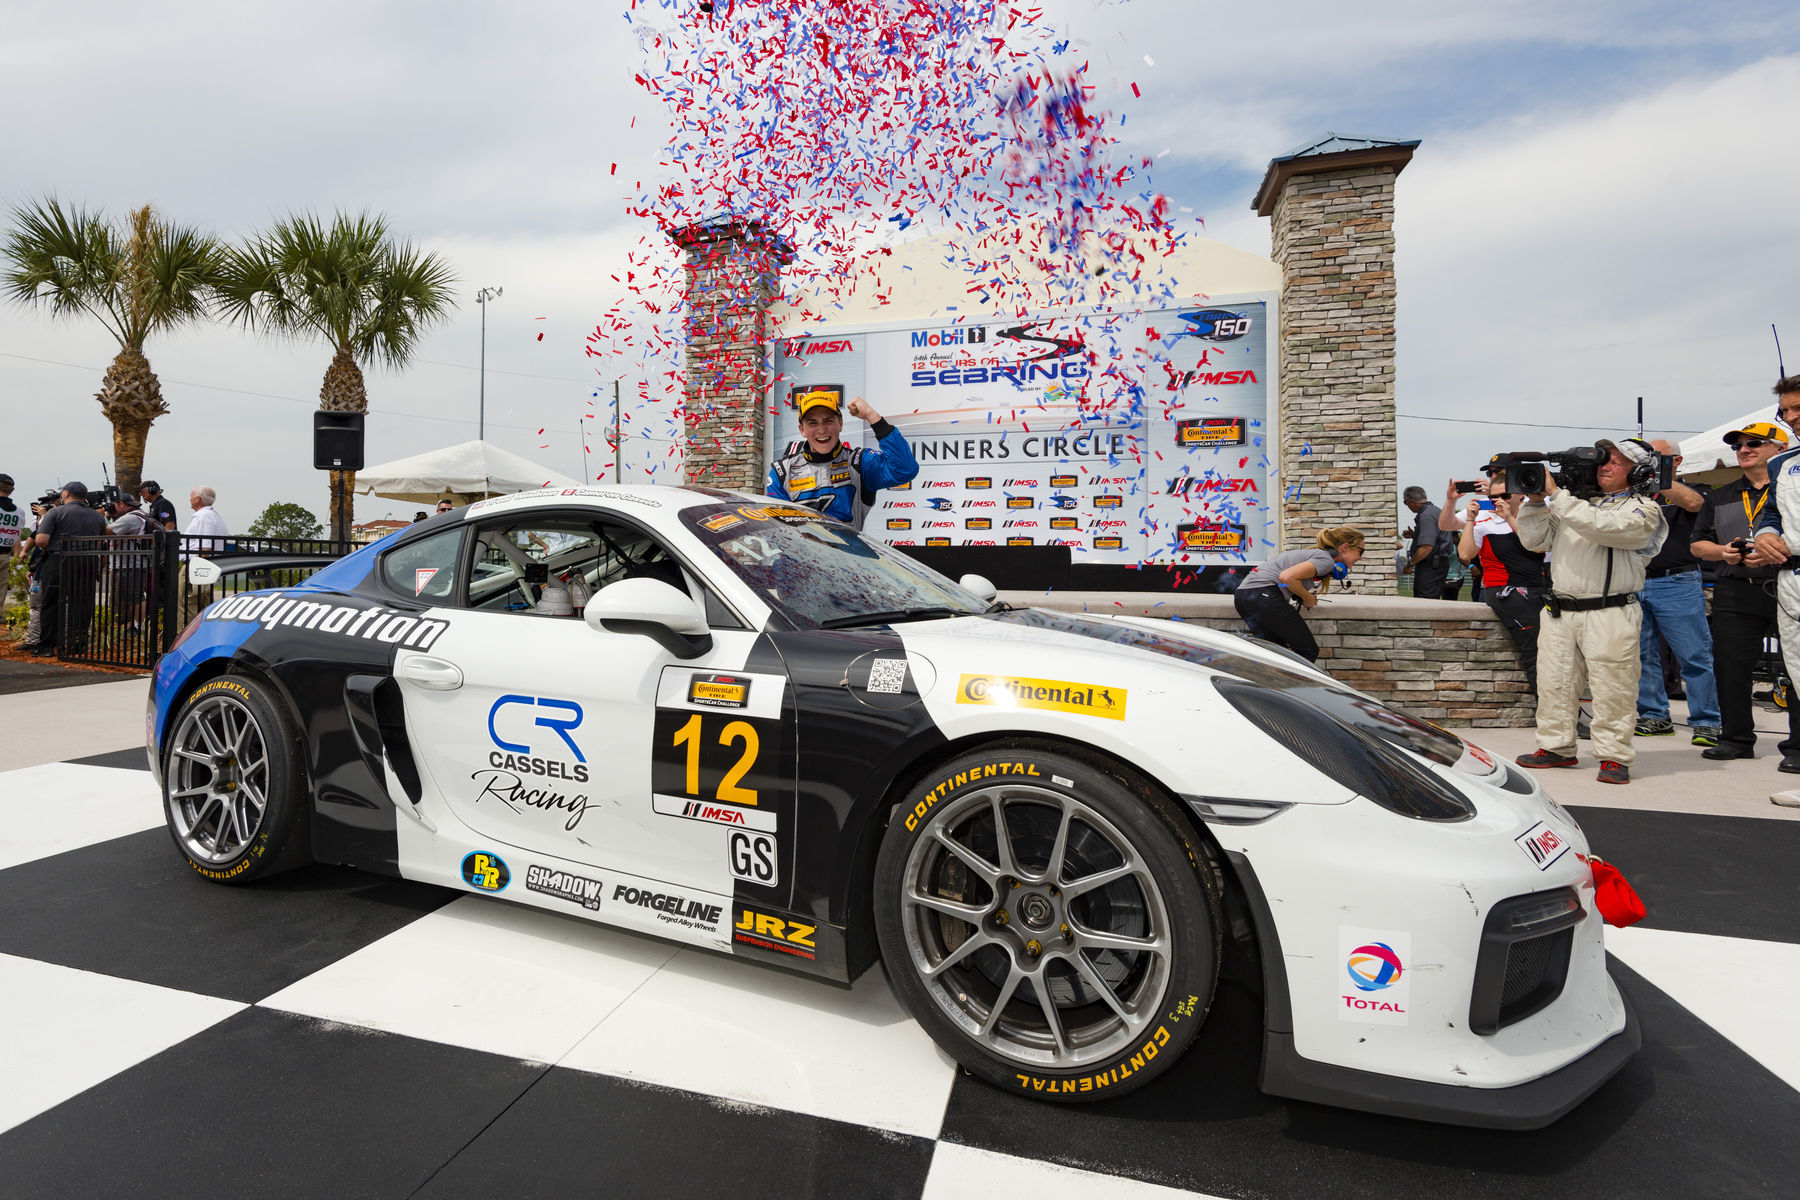 2016 Porsche Cayman | Bodymotion Racing Wins IMSA Sebring 150 in Porsche Cayman GT4 Clubsport on Forgeline One Piece Forged Monoblock GS1R Wheels